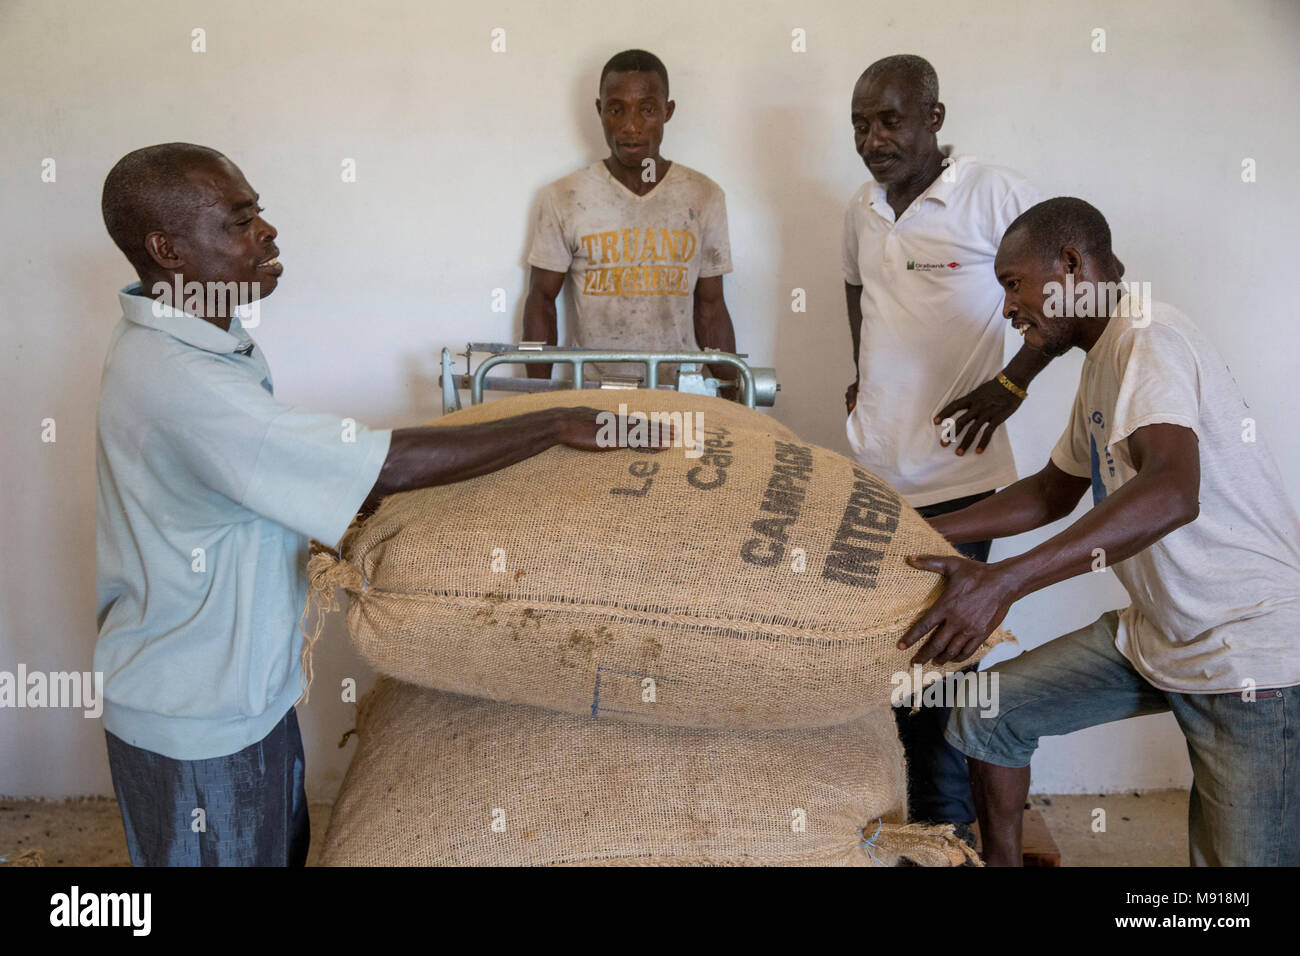 Ivory Coast. Producers (cooperative members) weighing cocoa bags. - Stock Image